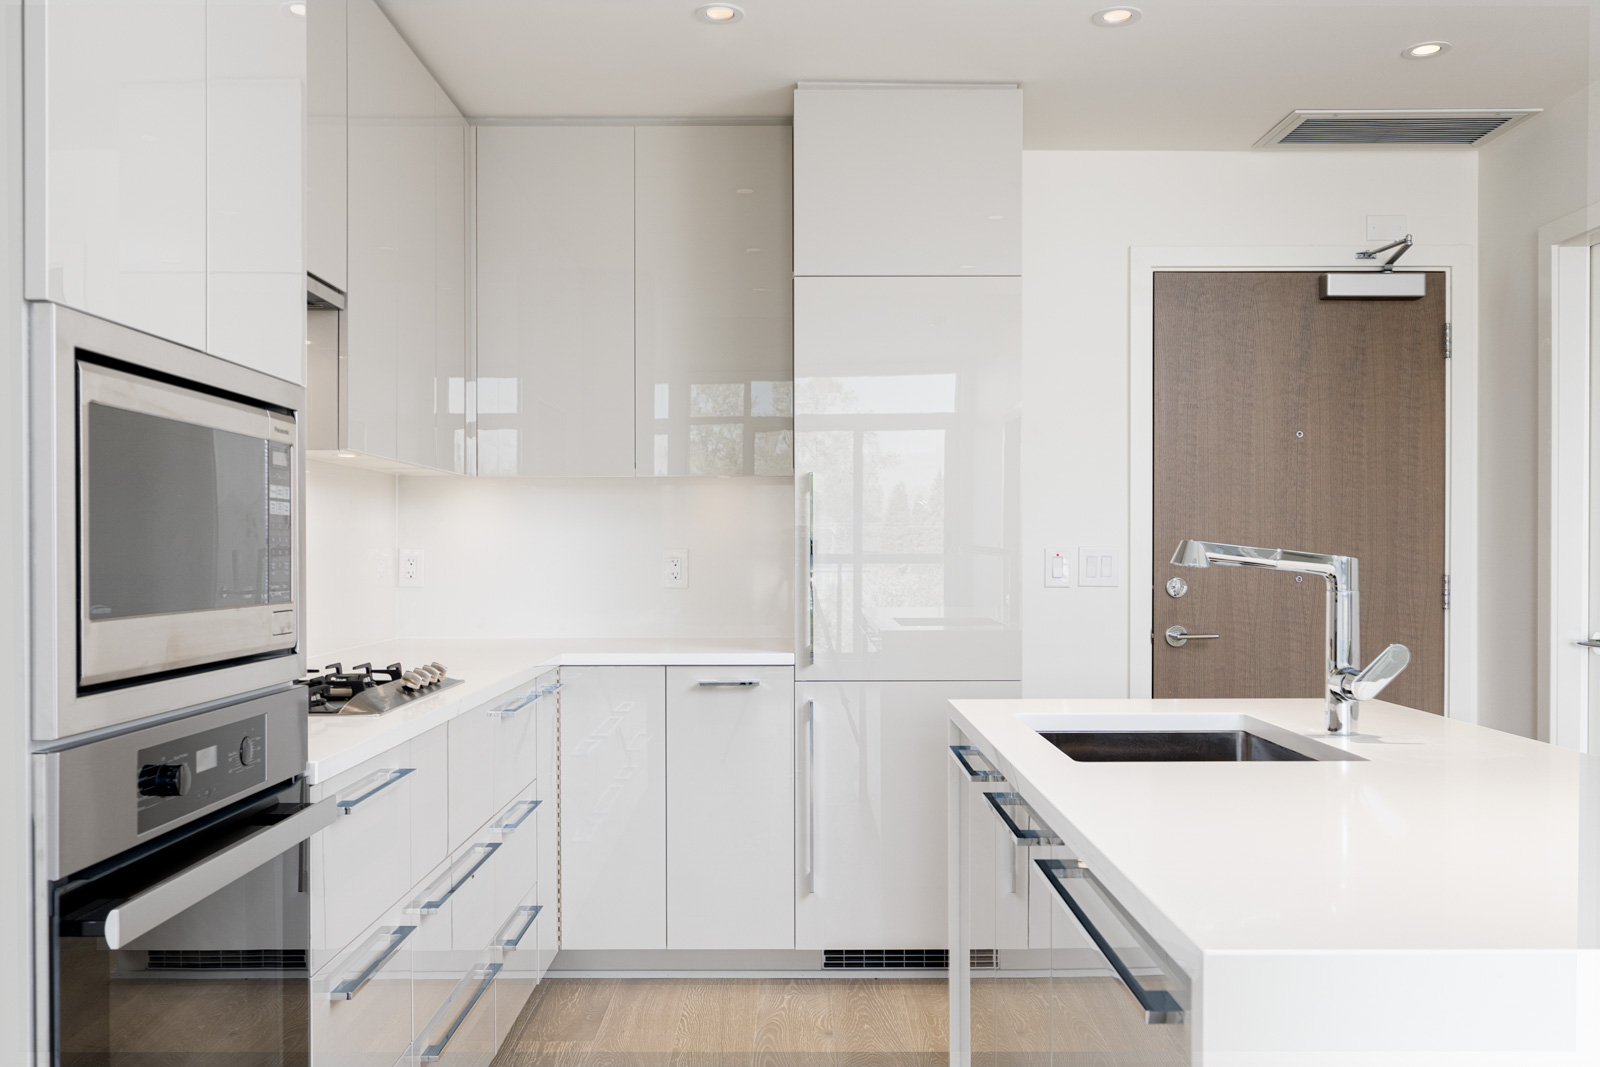 Monochromatic kitchen with all the essential appliances